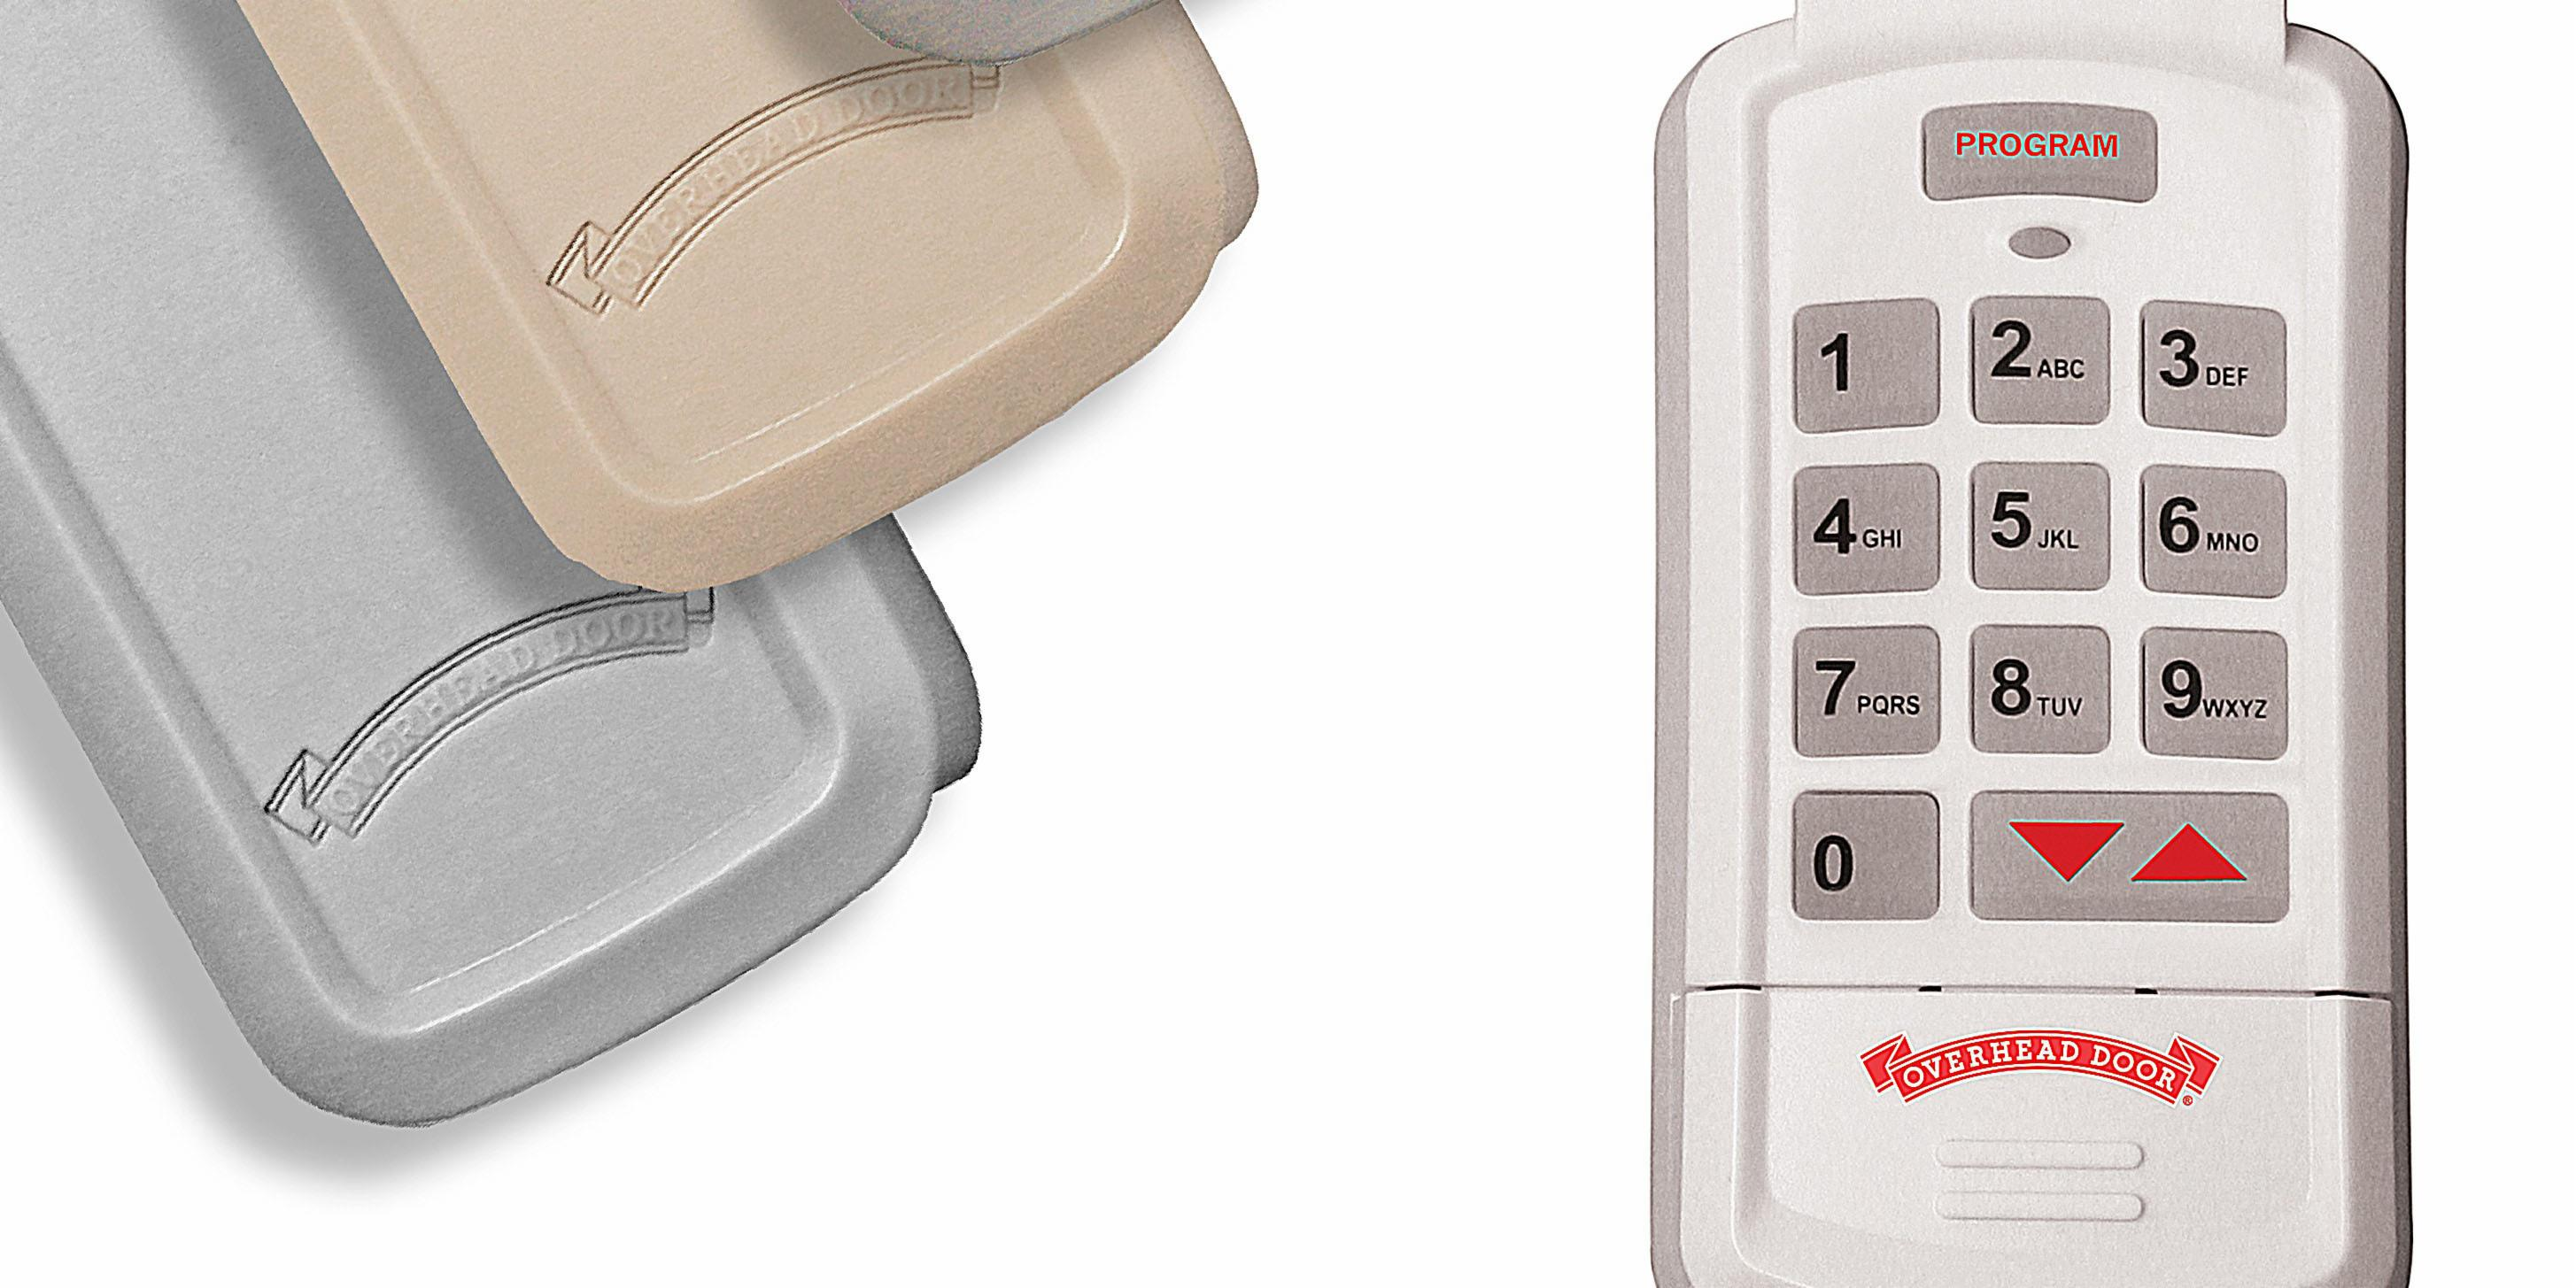 What are the Benefits of Garage Door Keypads?